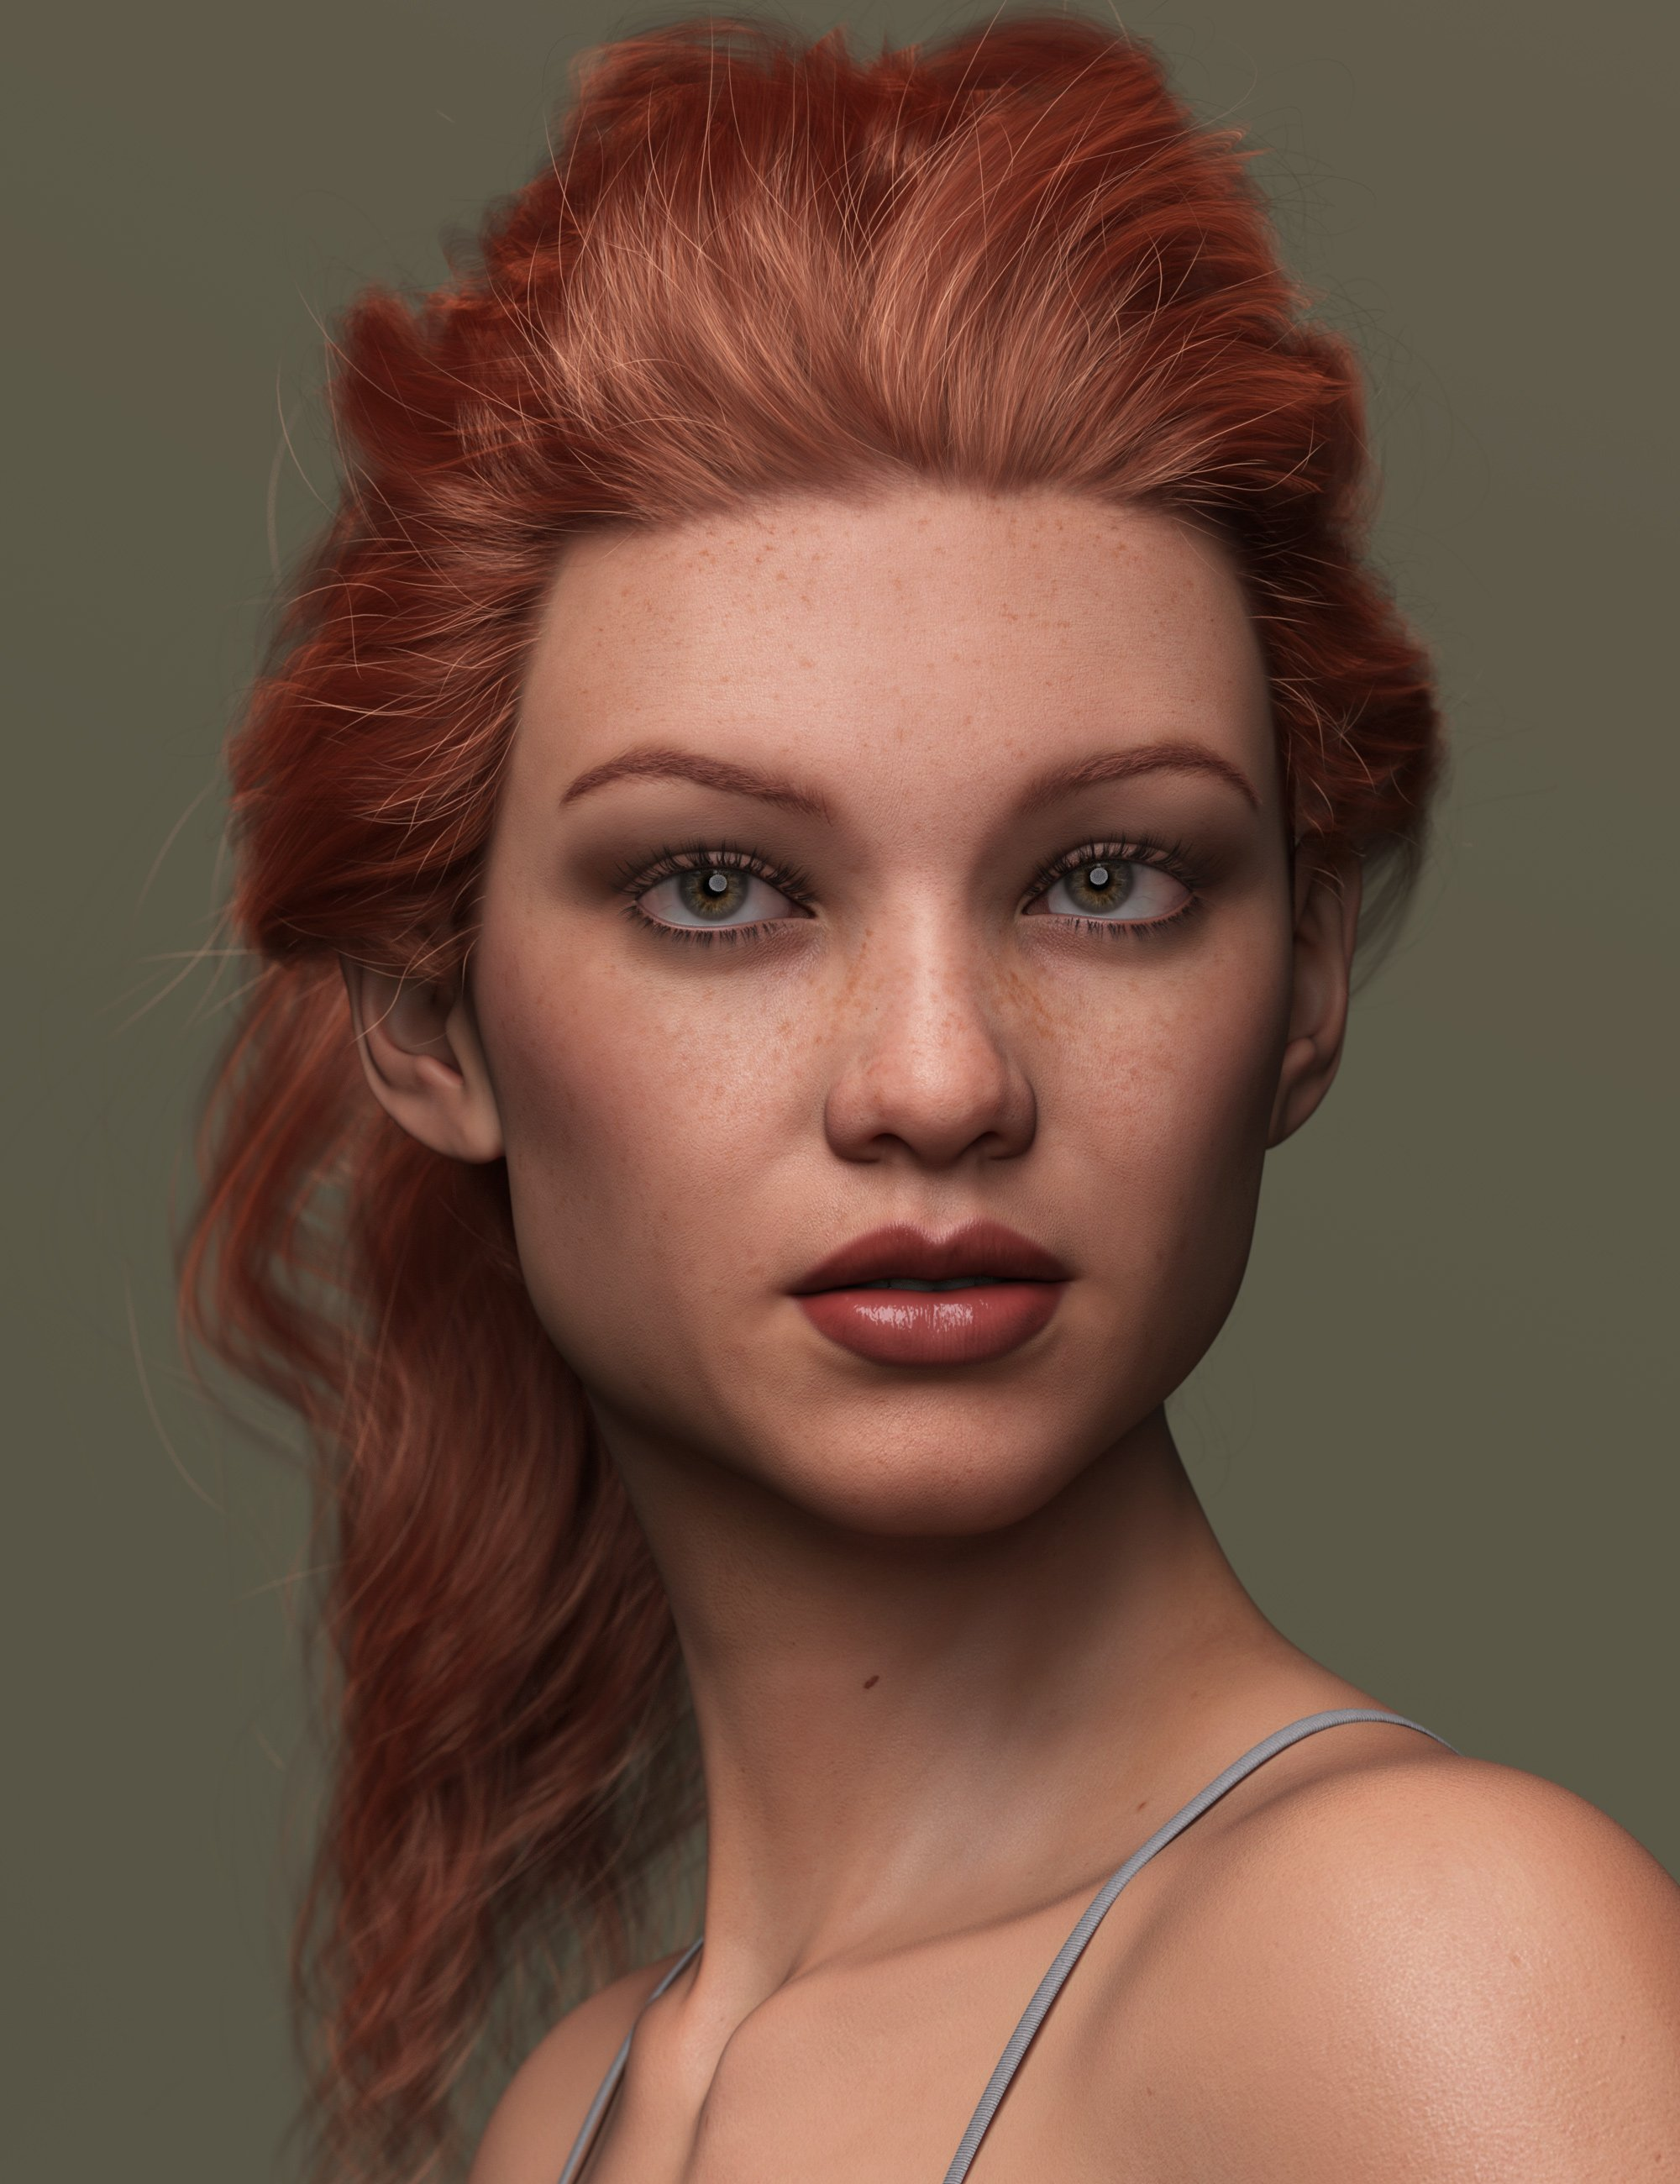 2021-07 Hair for Genesis 8 and 8.1 Females by: outoftouch, 3D Models by Daz 3D